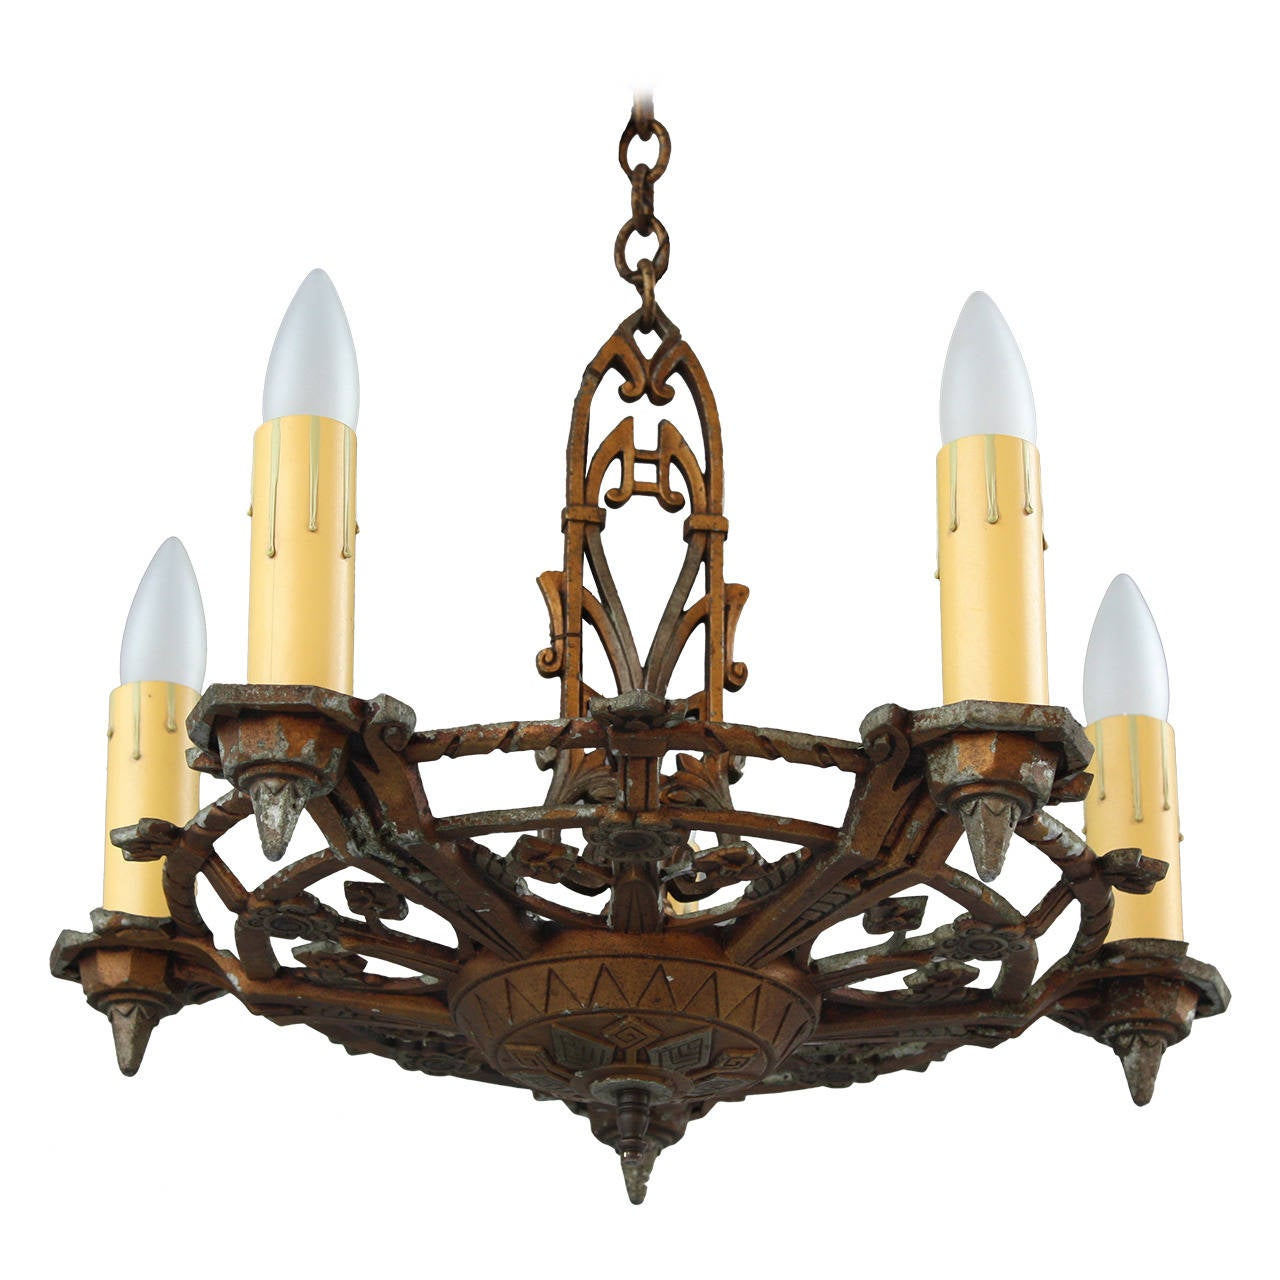 1920s Two-Toned Chandelier